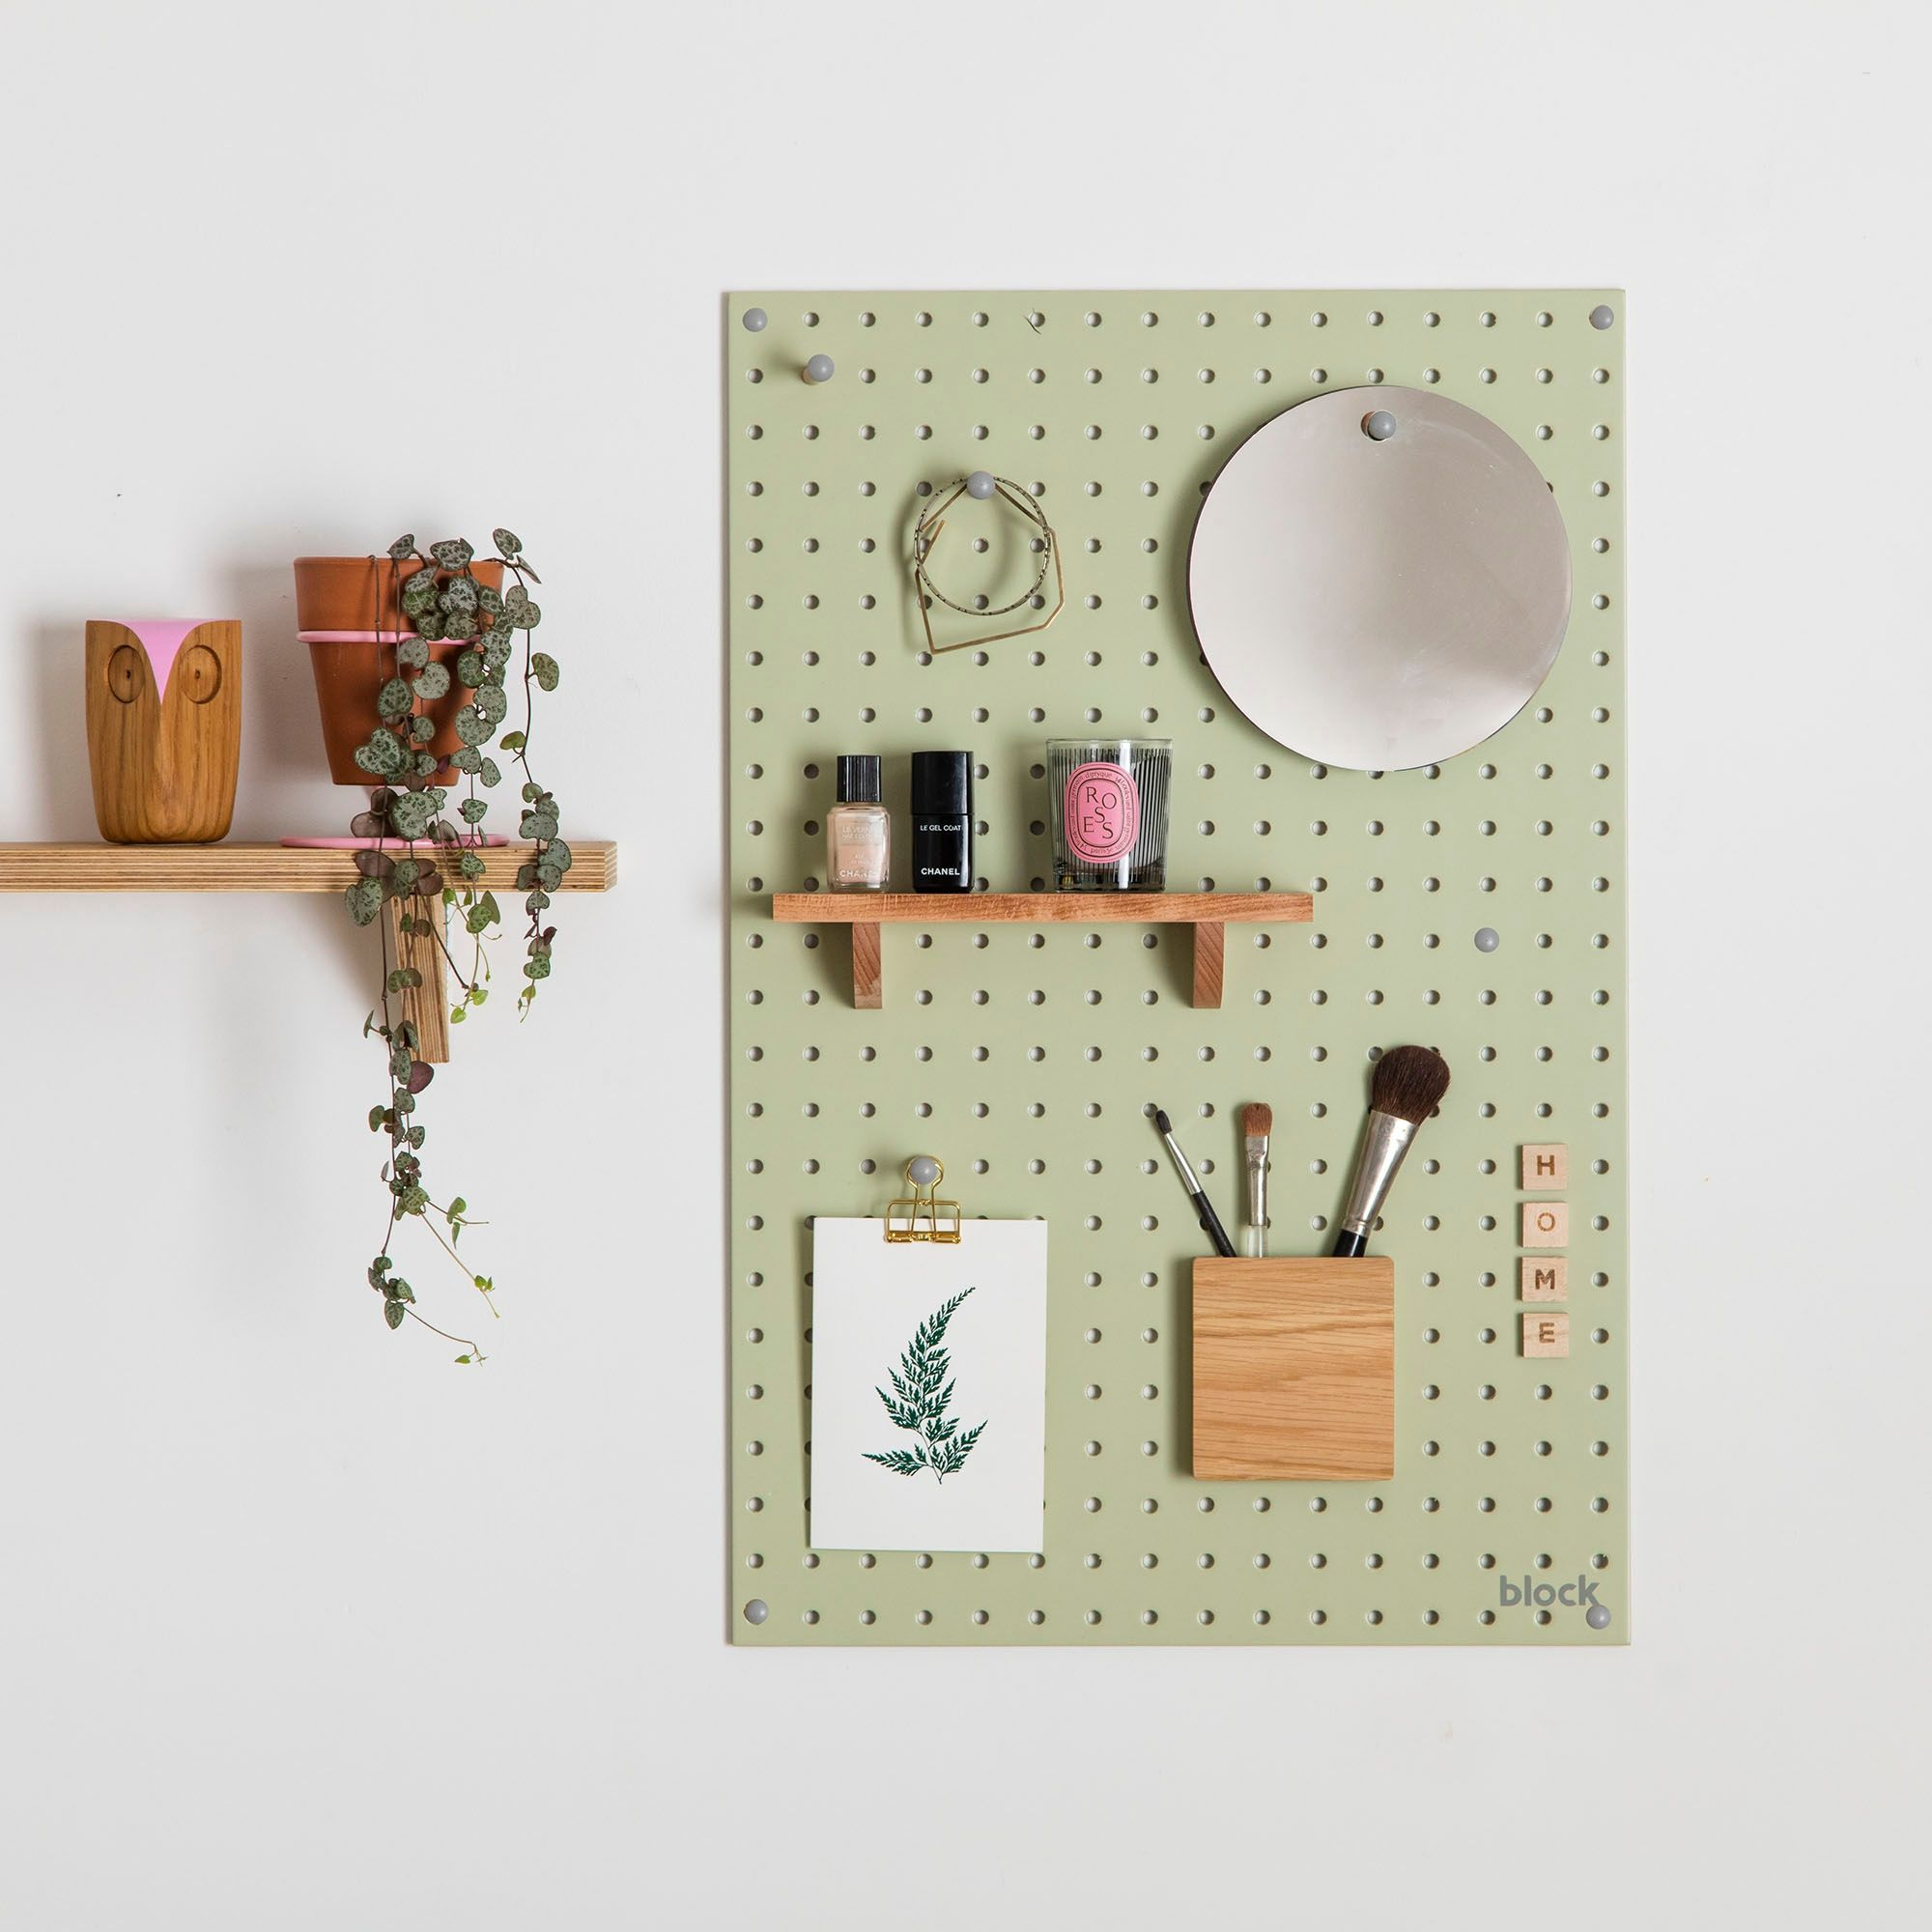 Pegboard Ideas - Green pegboard with wooden pegs